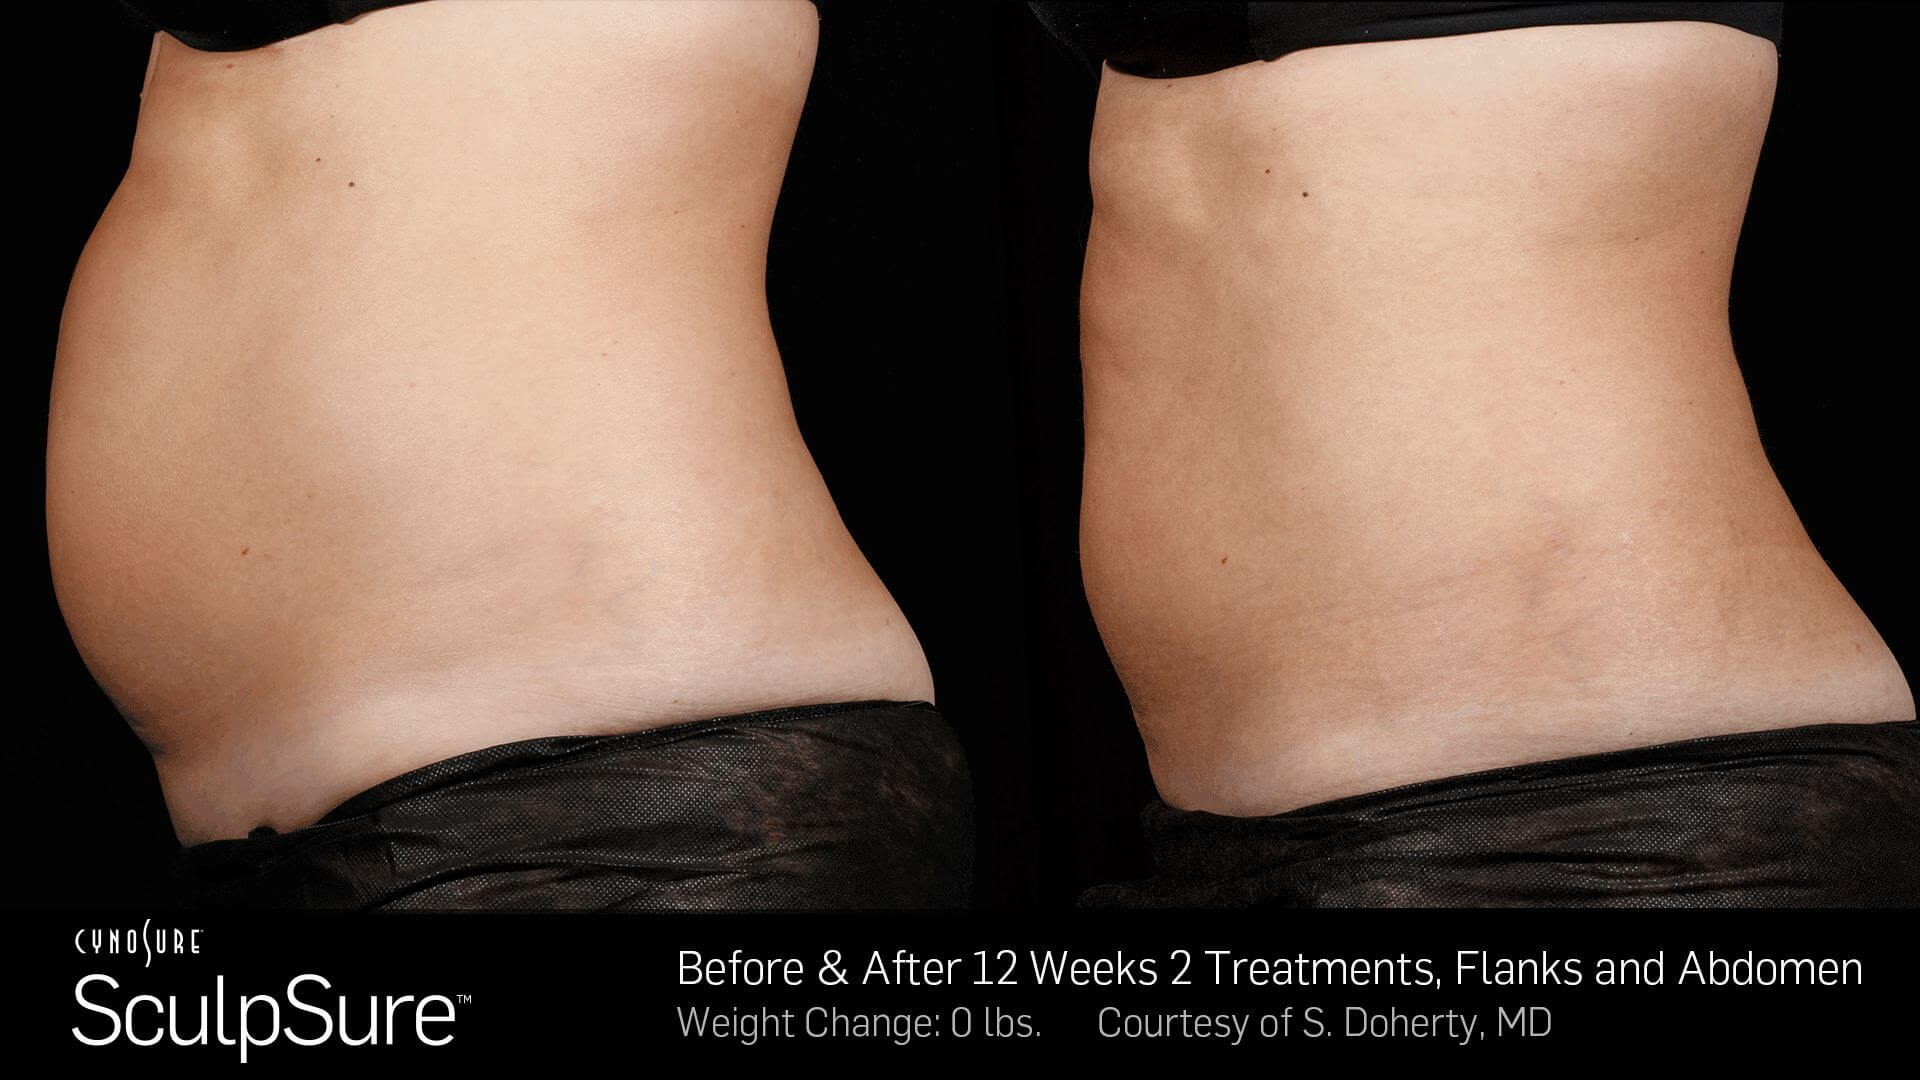 Before and After Photos 12 weeks, 2 Treatment, Flanks and Abdomen (female patient 3, side view)